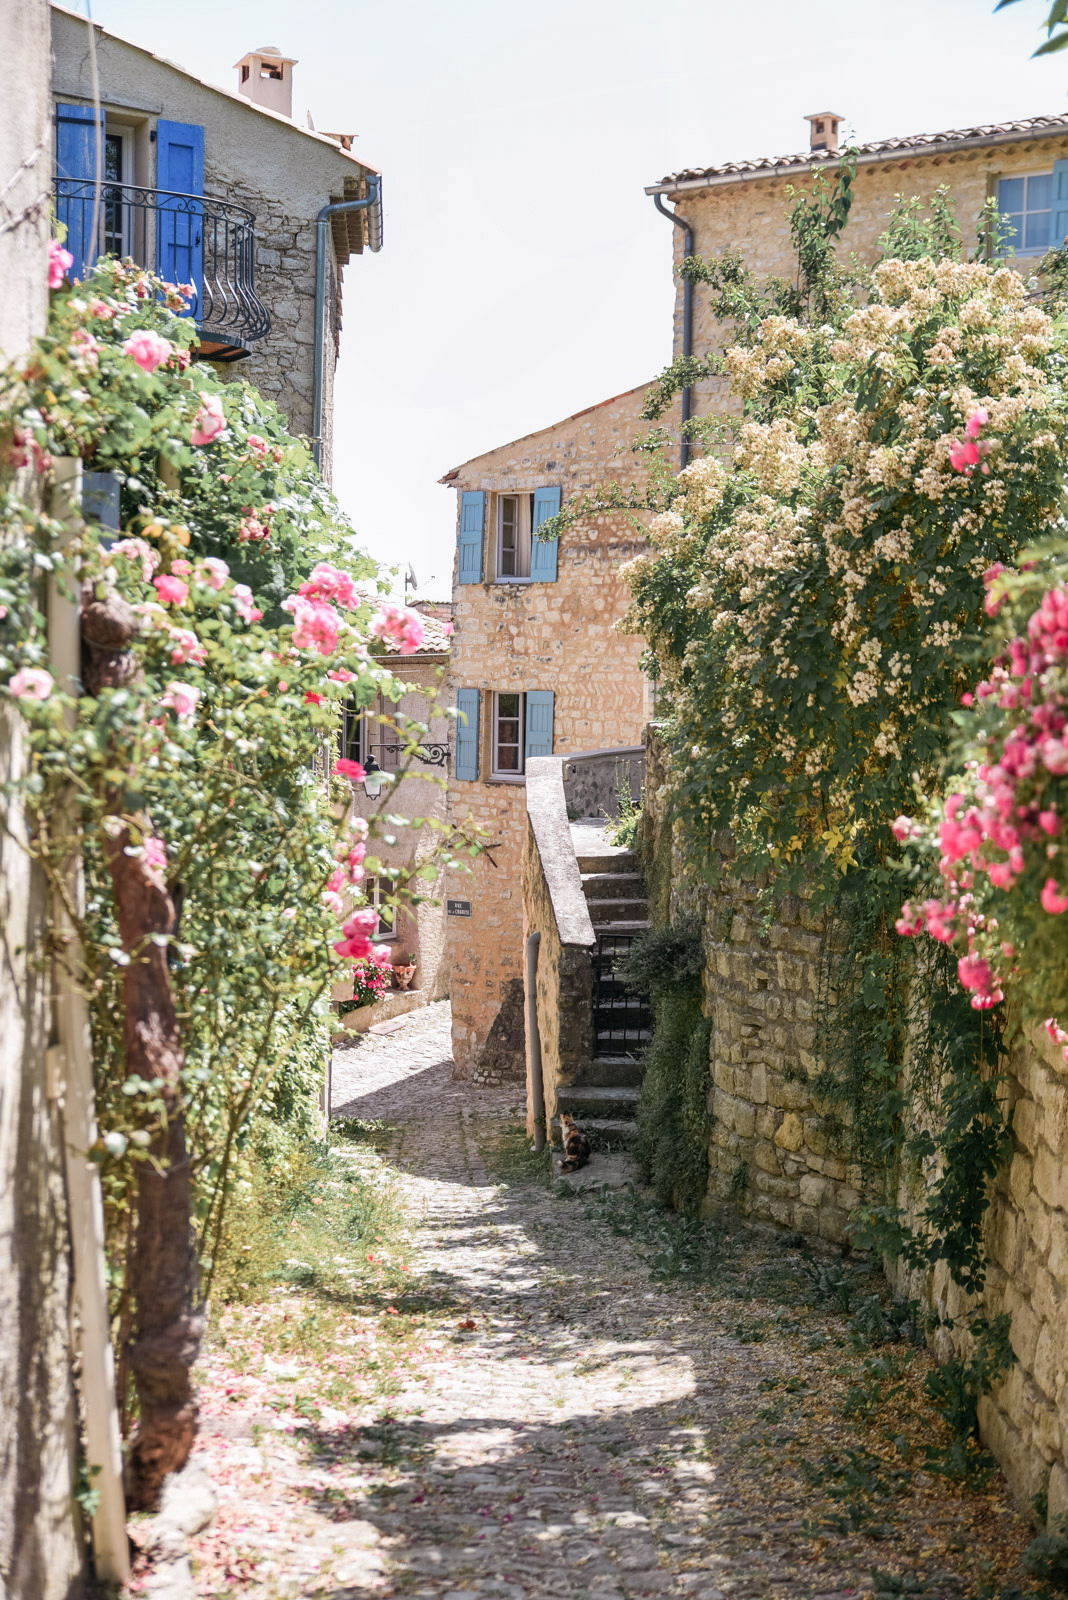 Blog-Mode-And-The-City-Lifestyle-Provence-Couvent-Minimes-Manosque-Fourcalquier-22